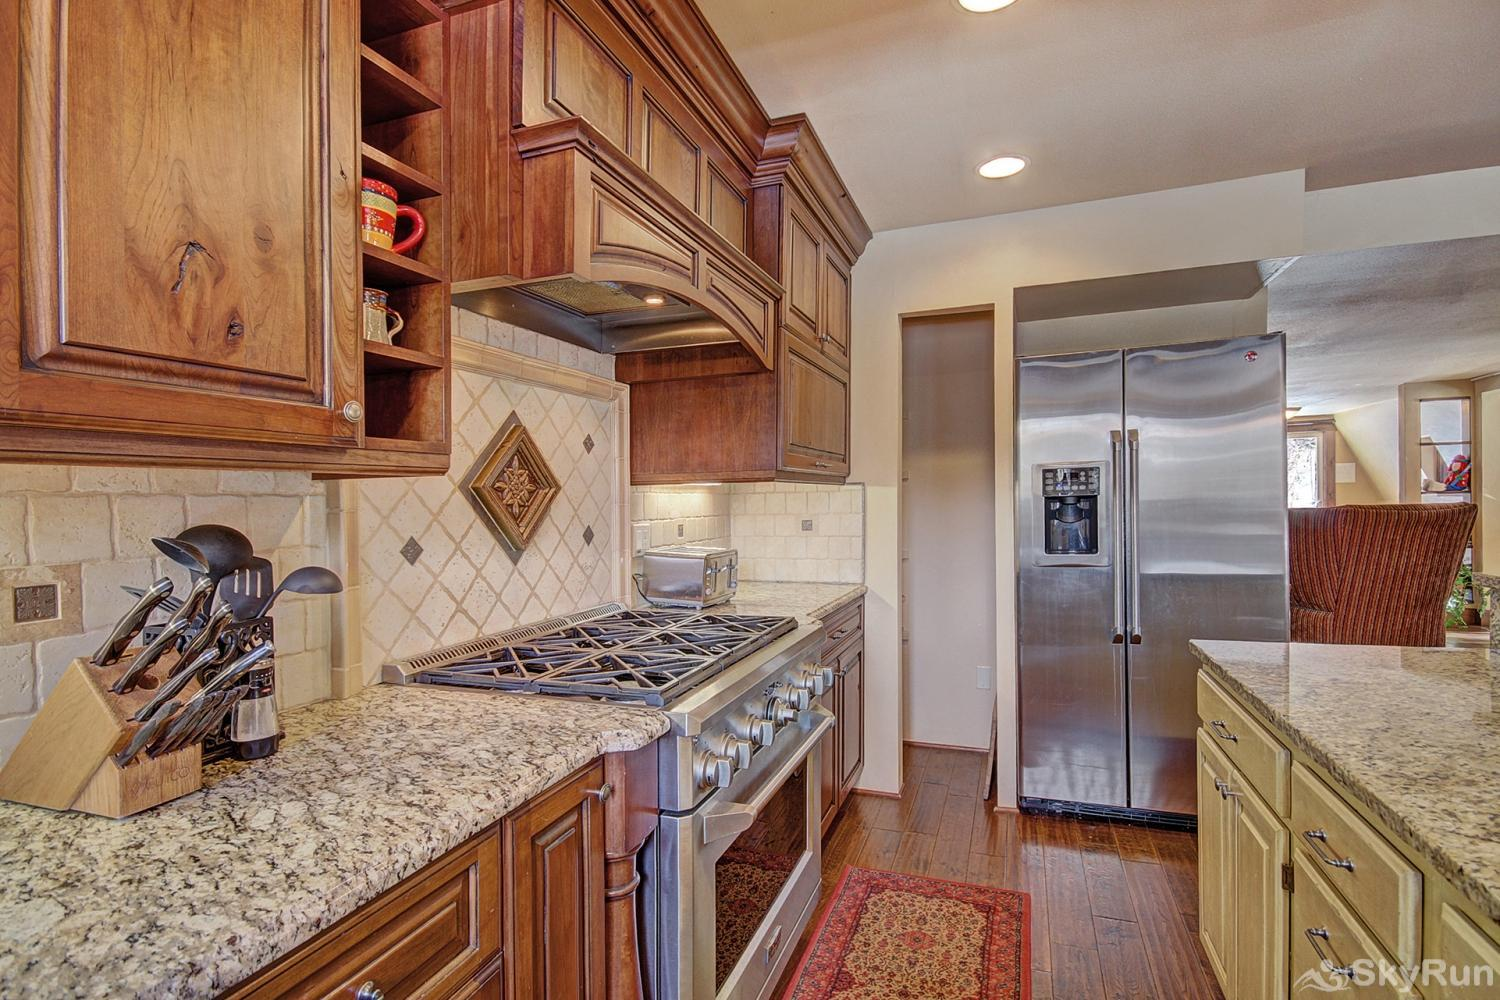 High Point Chateau Fully equipped kitchen updated with modern appliances